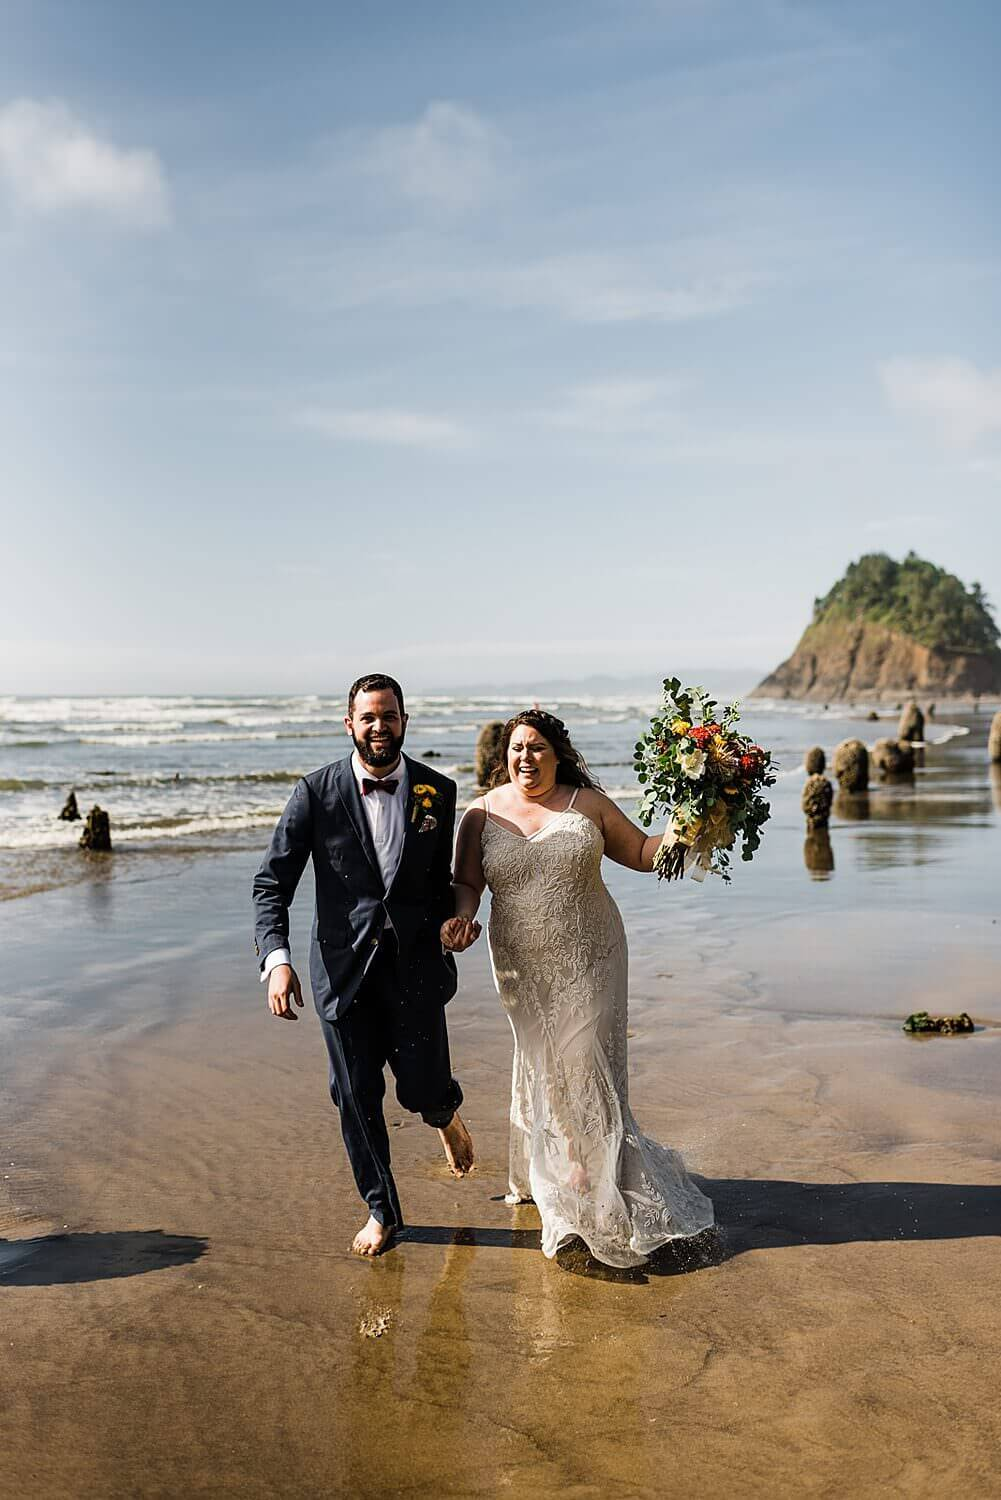 Neskowin,Oregon Coast,adventure elopement,cape kiwanda,elope your life,ghost forest,oregon,pacific northwest,proposal rock,sam starns,